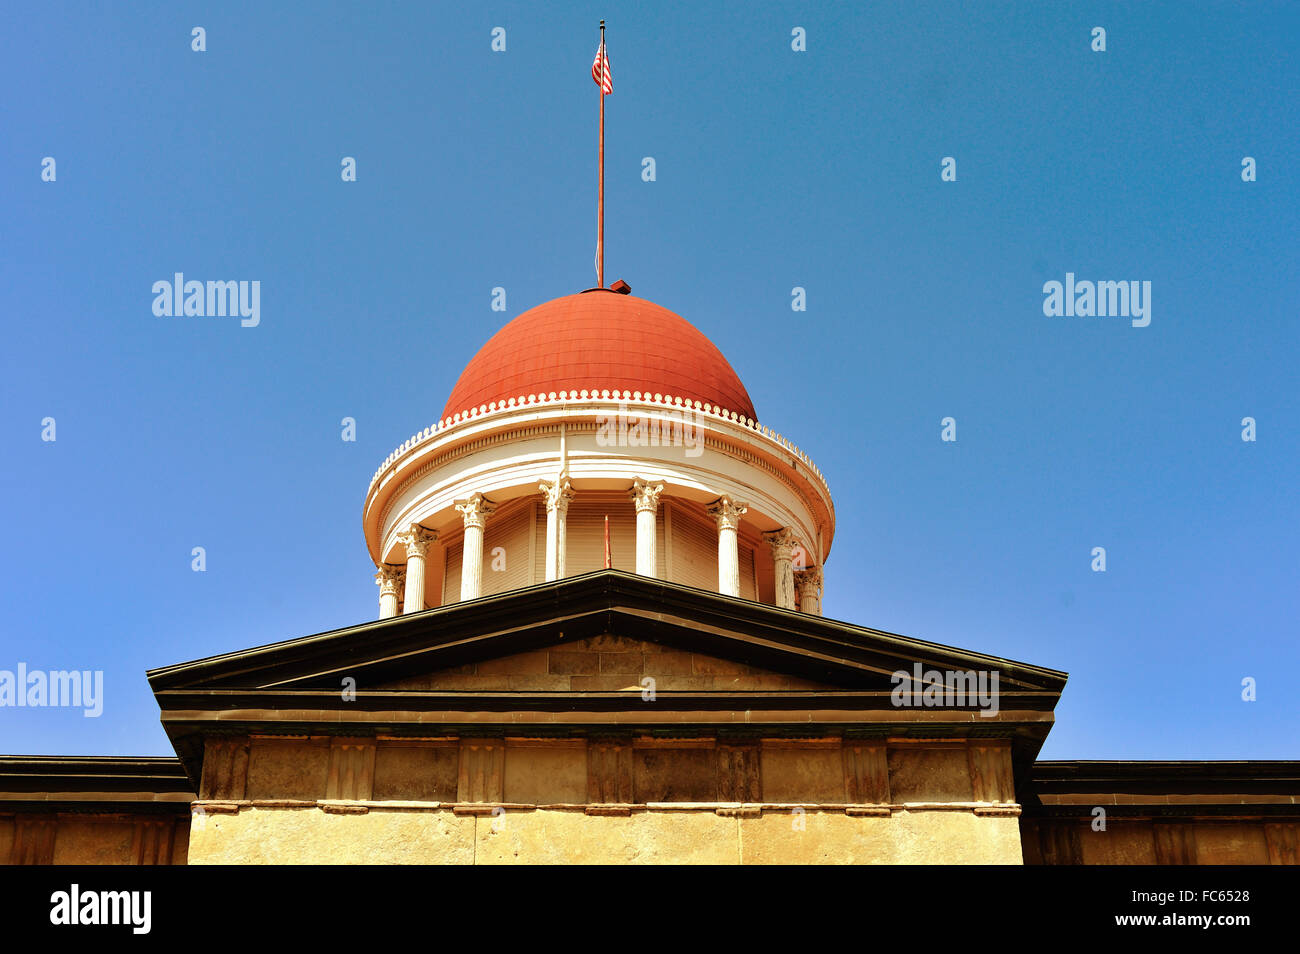 The Old State Capitol Building dome in Springfield, Illinois. It was built in the Greek Revival style in 1837–1840. - Stock Image